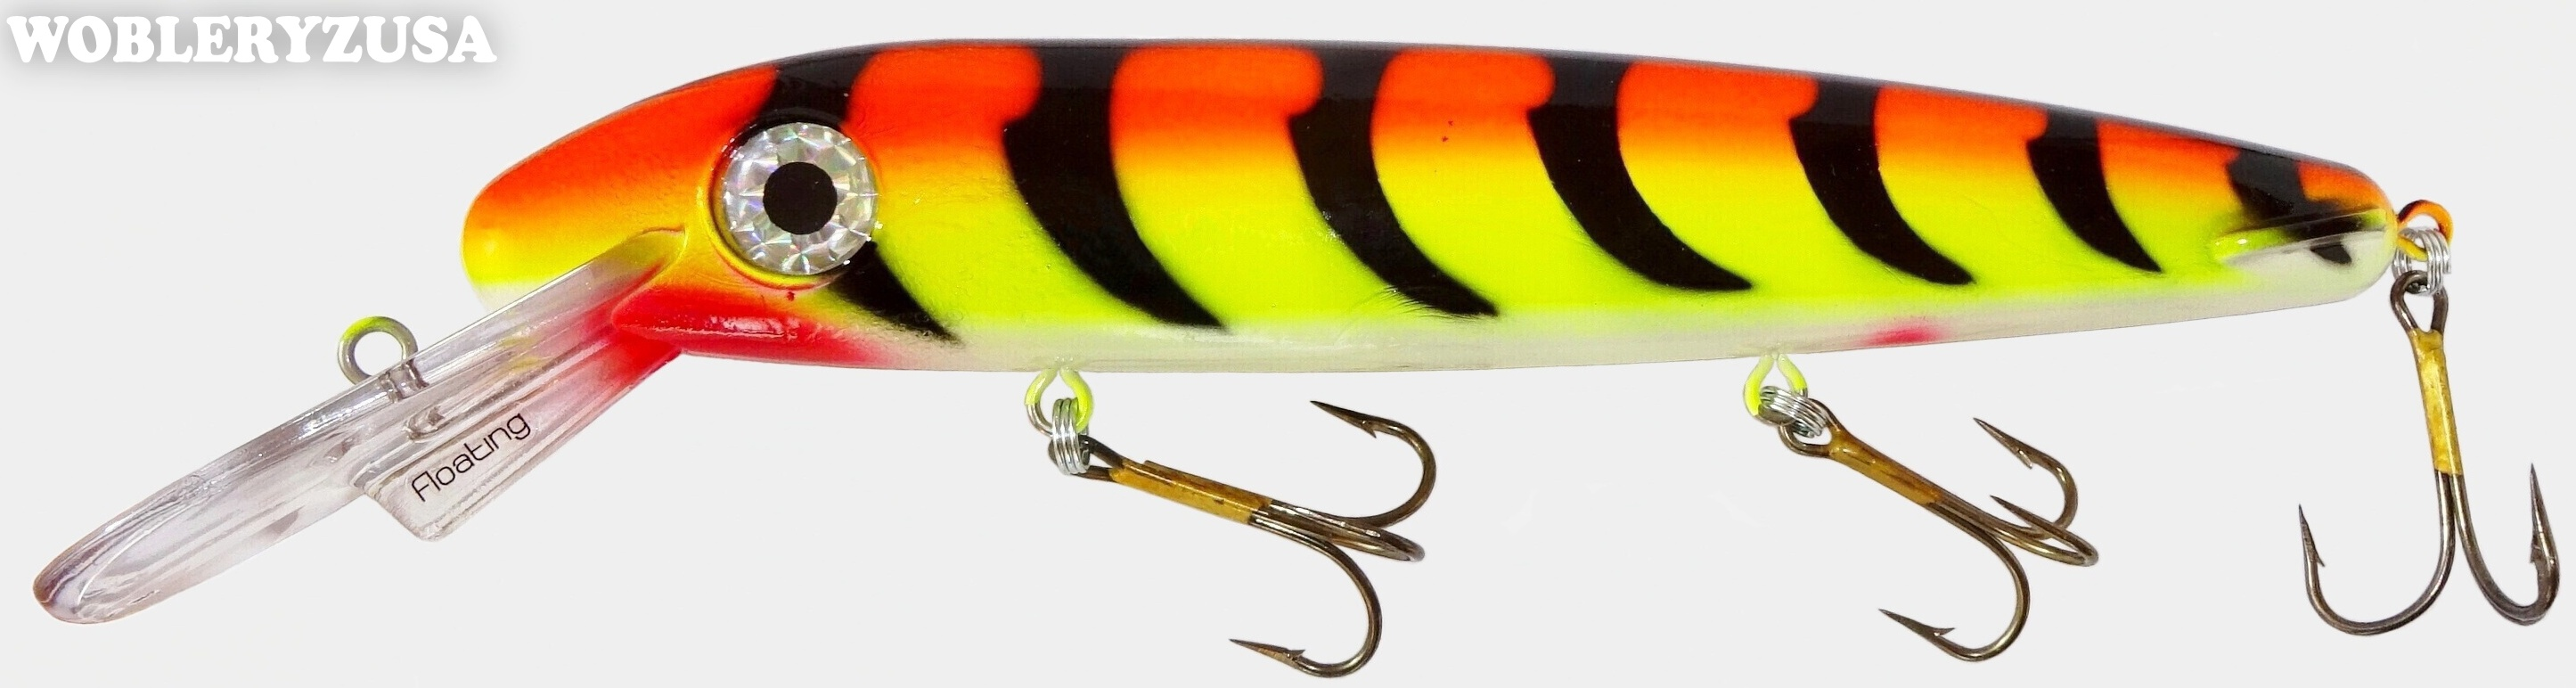 Wobler ERC TripleD 30,5 cm - Orange Tiger